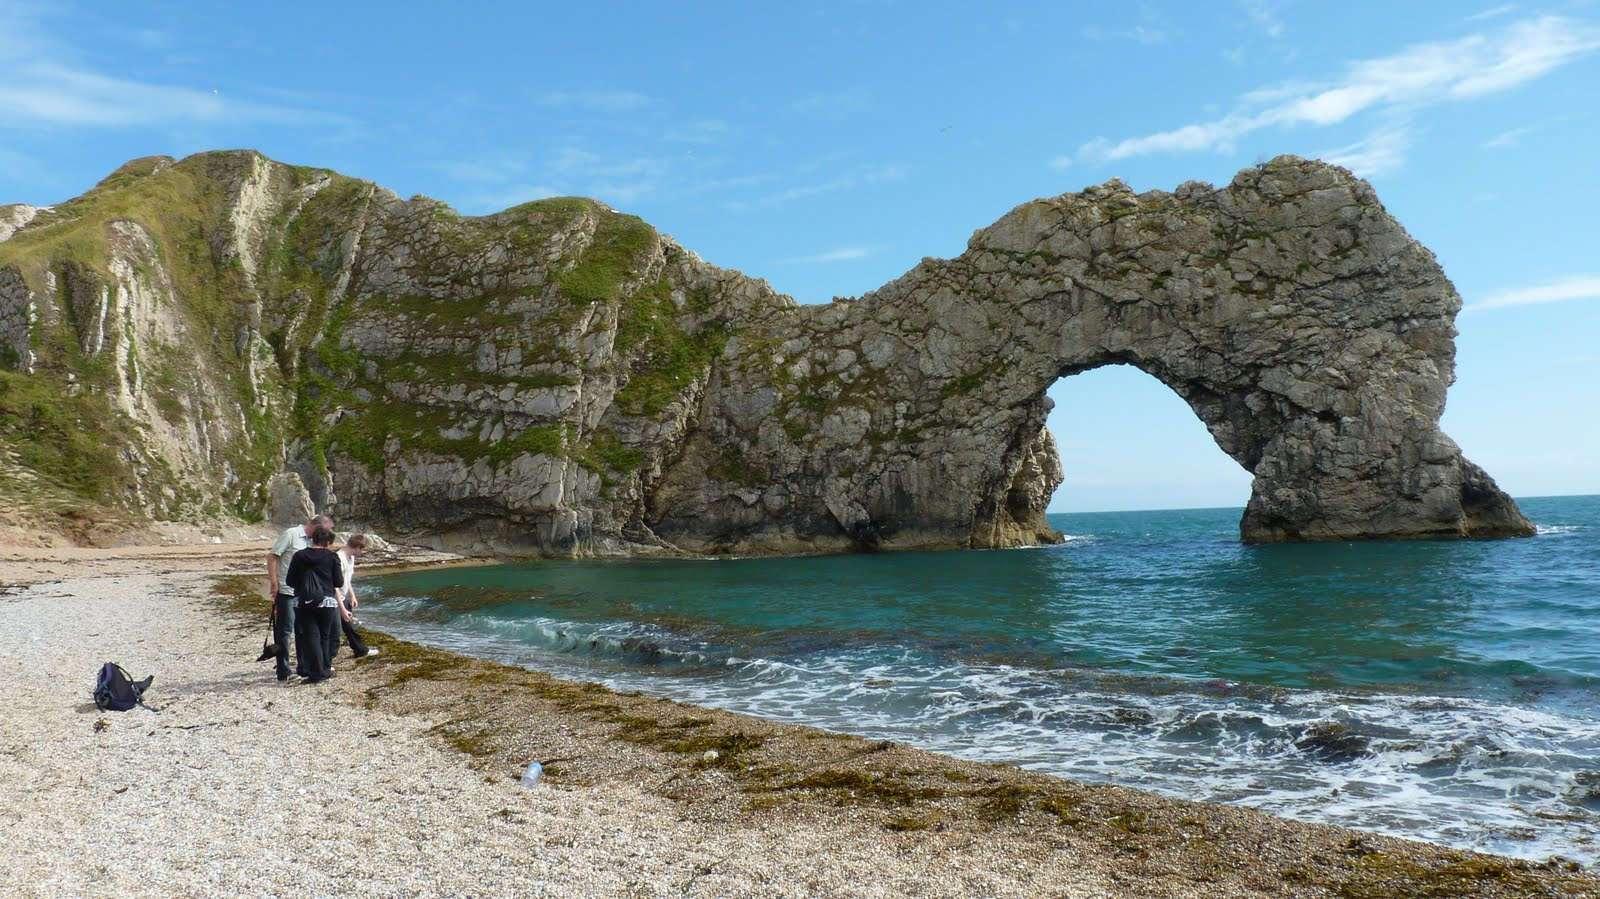 durdle door - photo #10